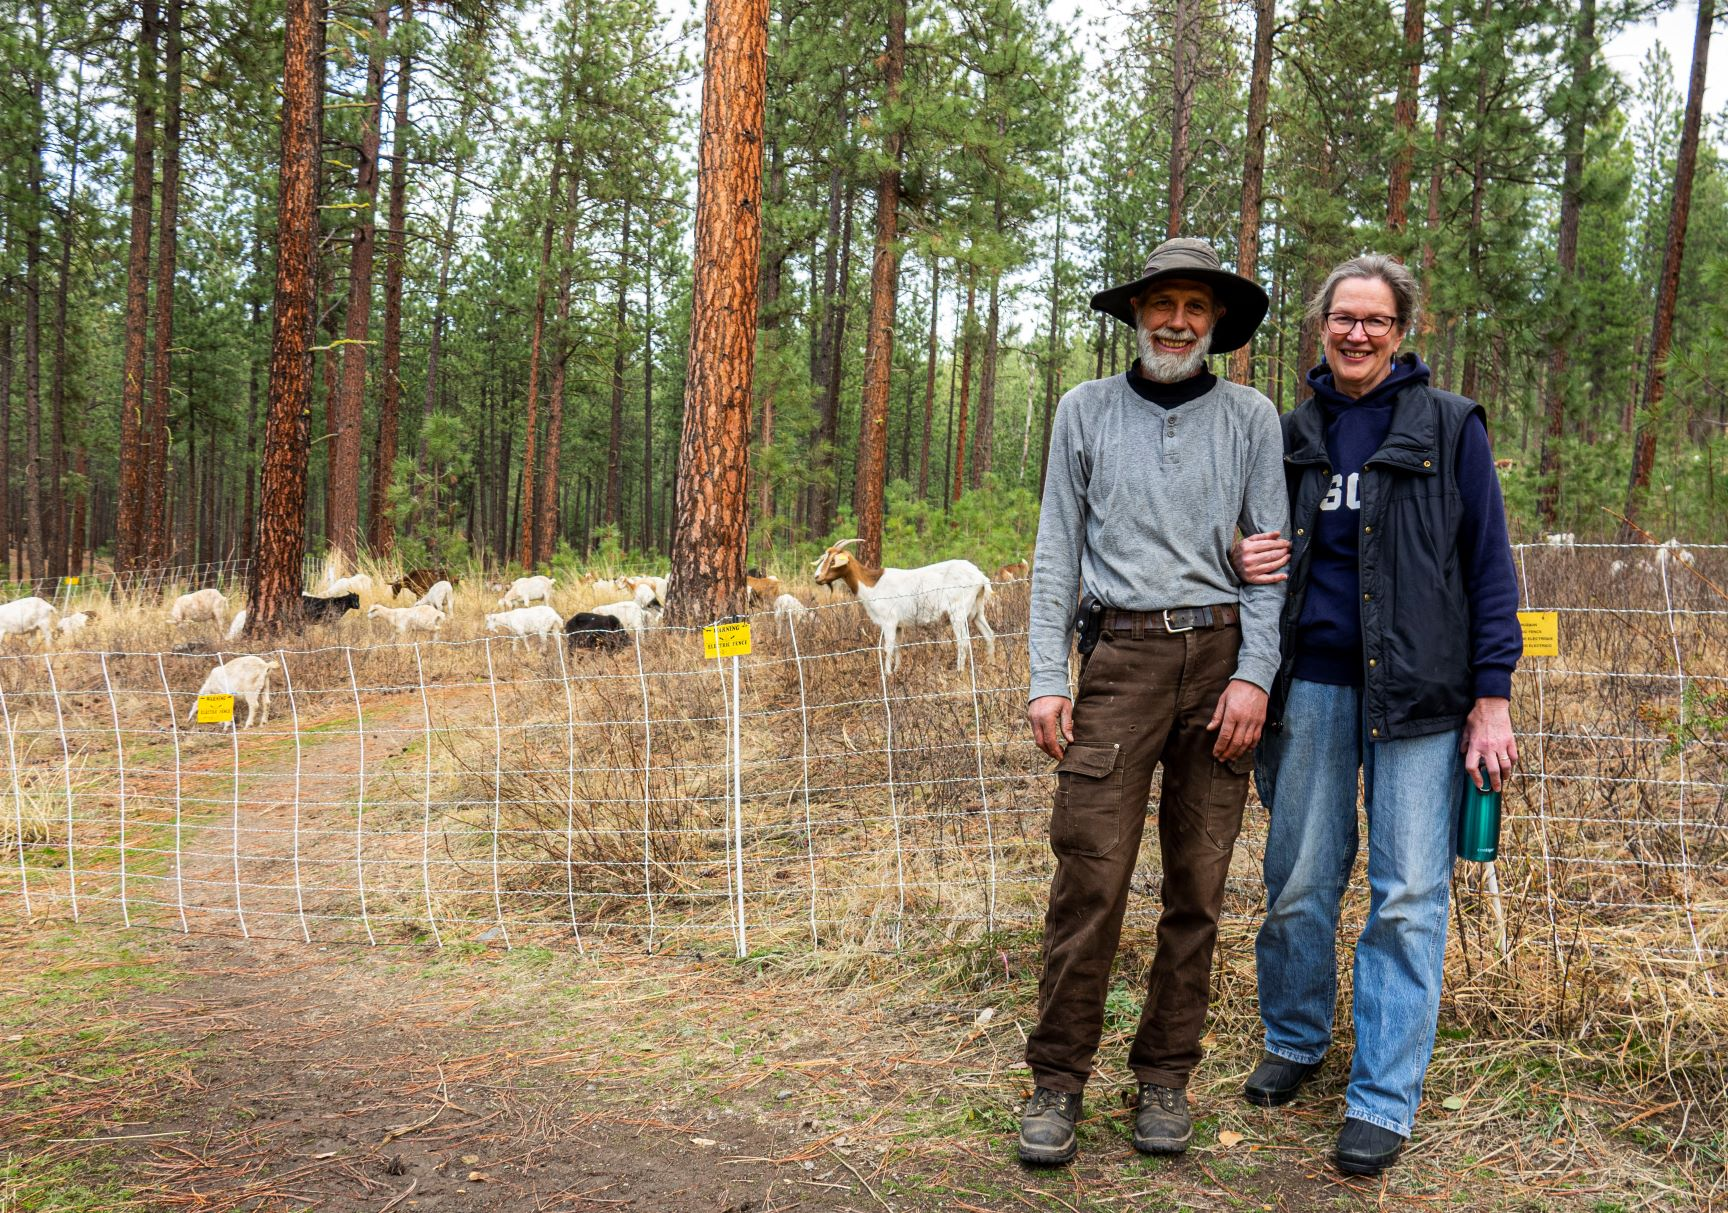 Healing Hooves goat shepherds standing near the fence enclosure with their grazing goats on Spokane's High Drive Bluff.